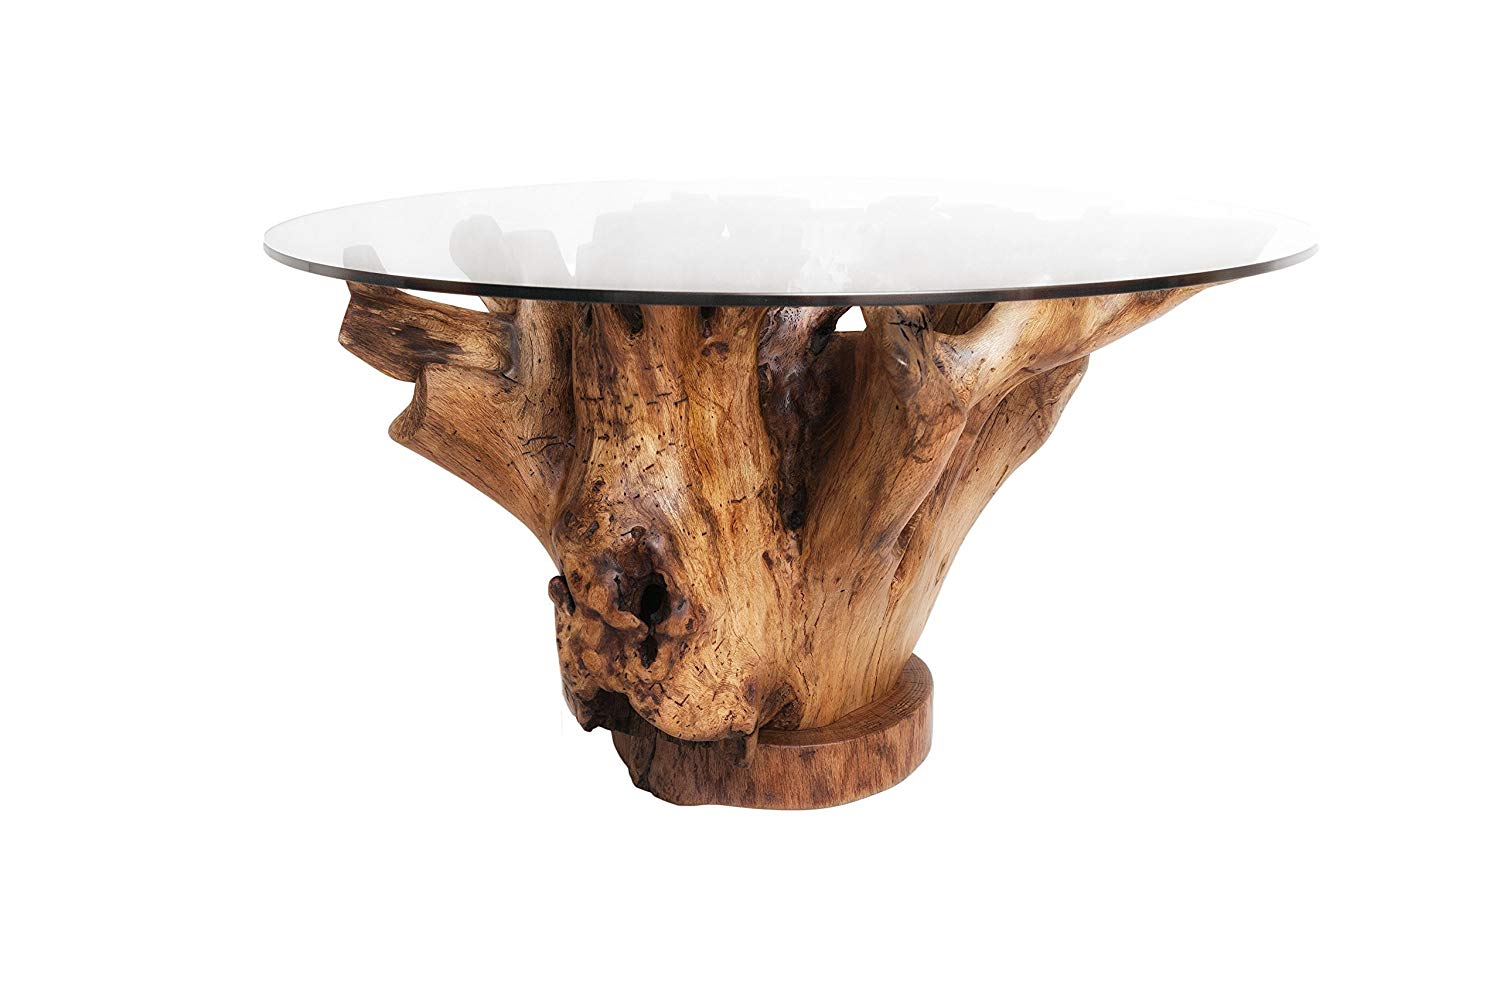 tree stump coffee table handmade end uttermost settee above toilet cabinet high unique accent tables twin and dresser set outdoor metal nesting diy pallet dog kennel living room